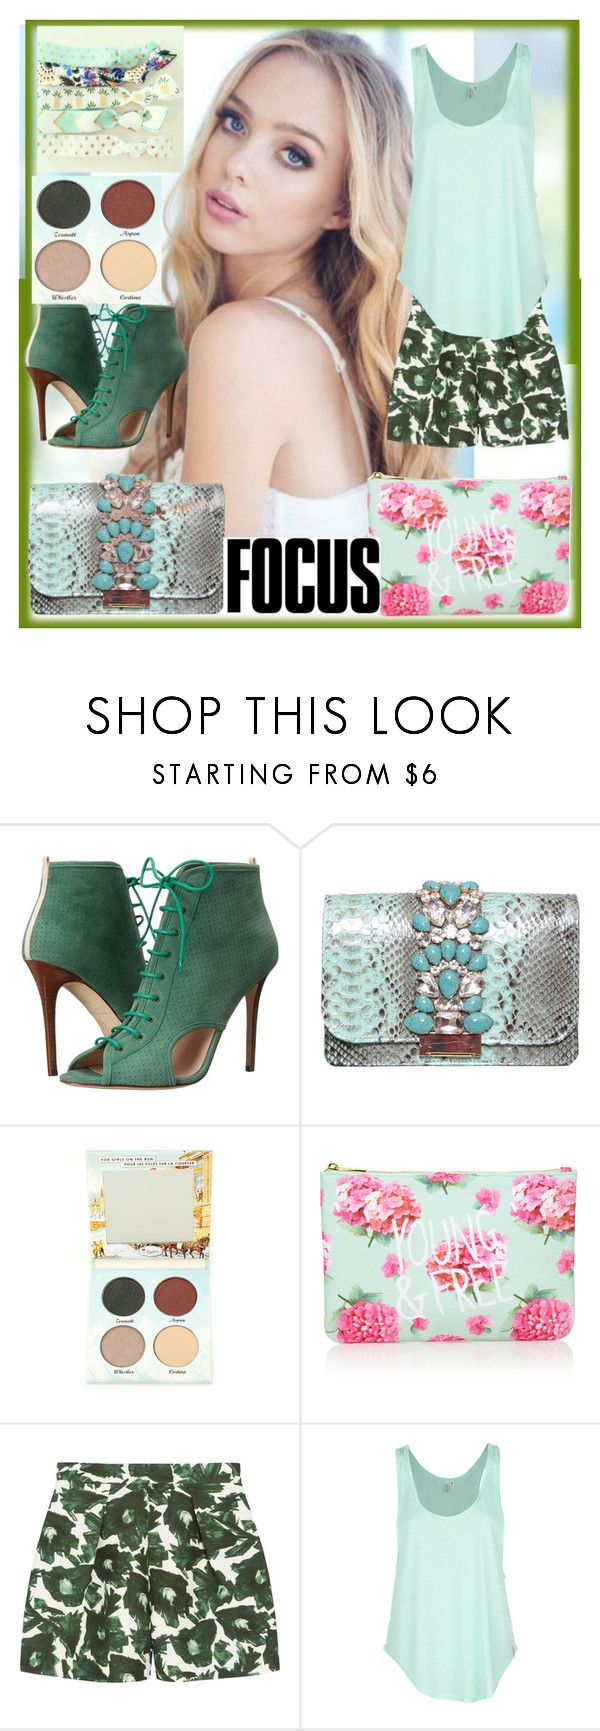 """""""Untitled #122"""" by esperanza8 ❤ liked on Polyvore featuring beauty, SJP, GEDEBE, TheBalm, Forever 21, Mother of Pearl and Rip Curl"""